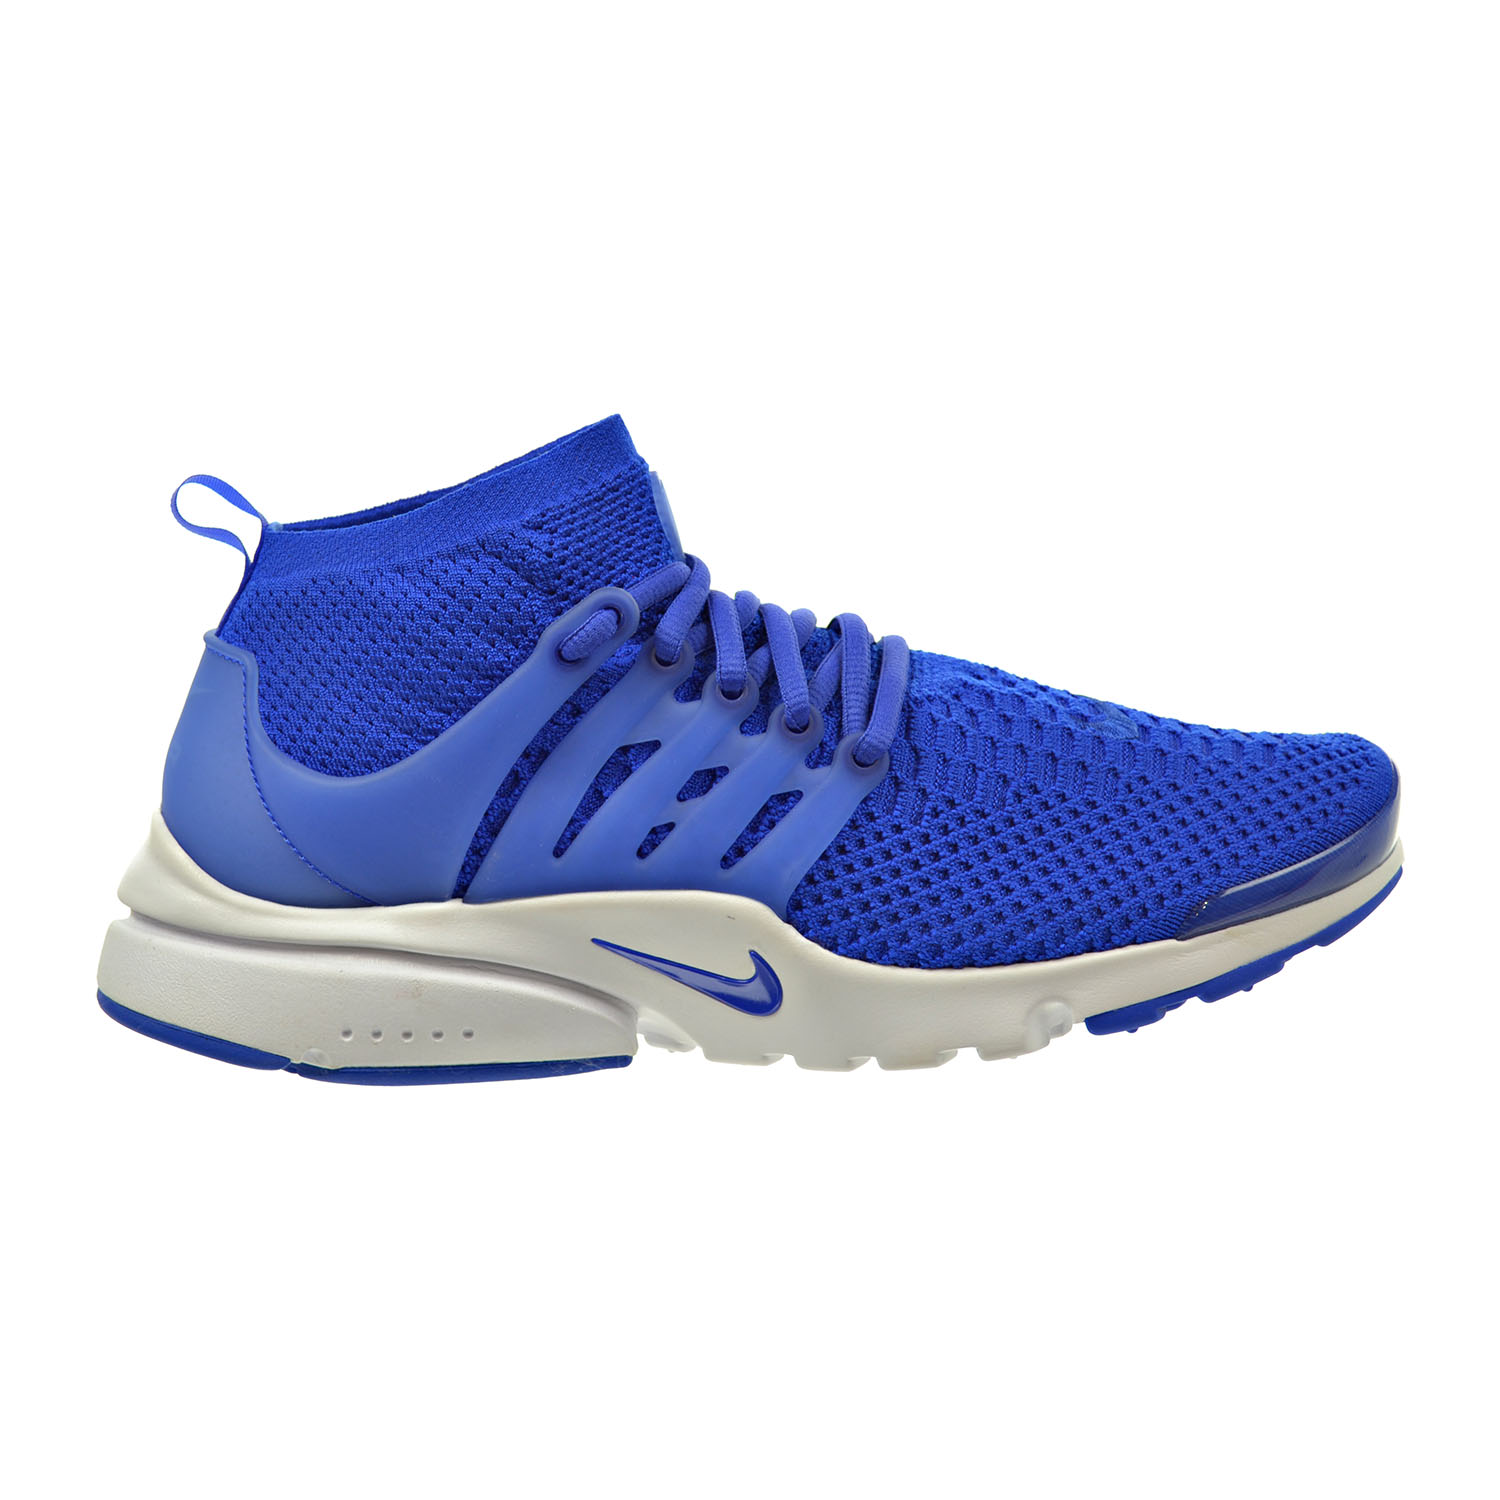 nike air presto flyknit ultra men 39 s shoes blue white total. Black Bedroom Furniture Sets. Home Design Ideas